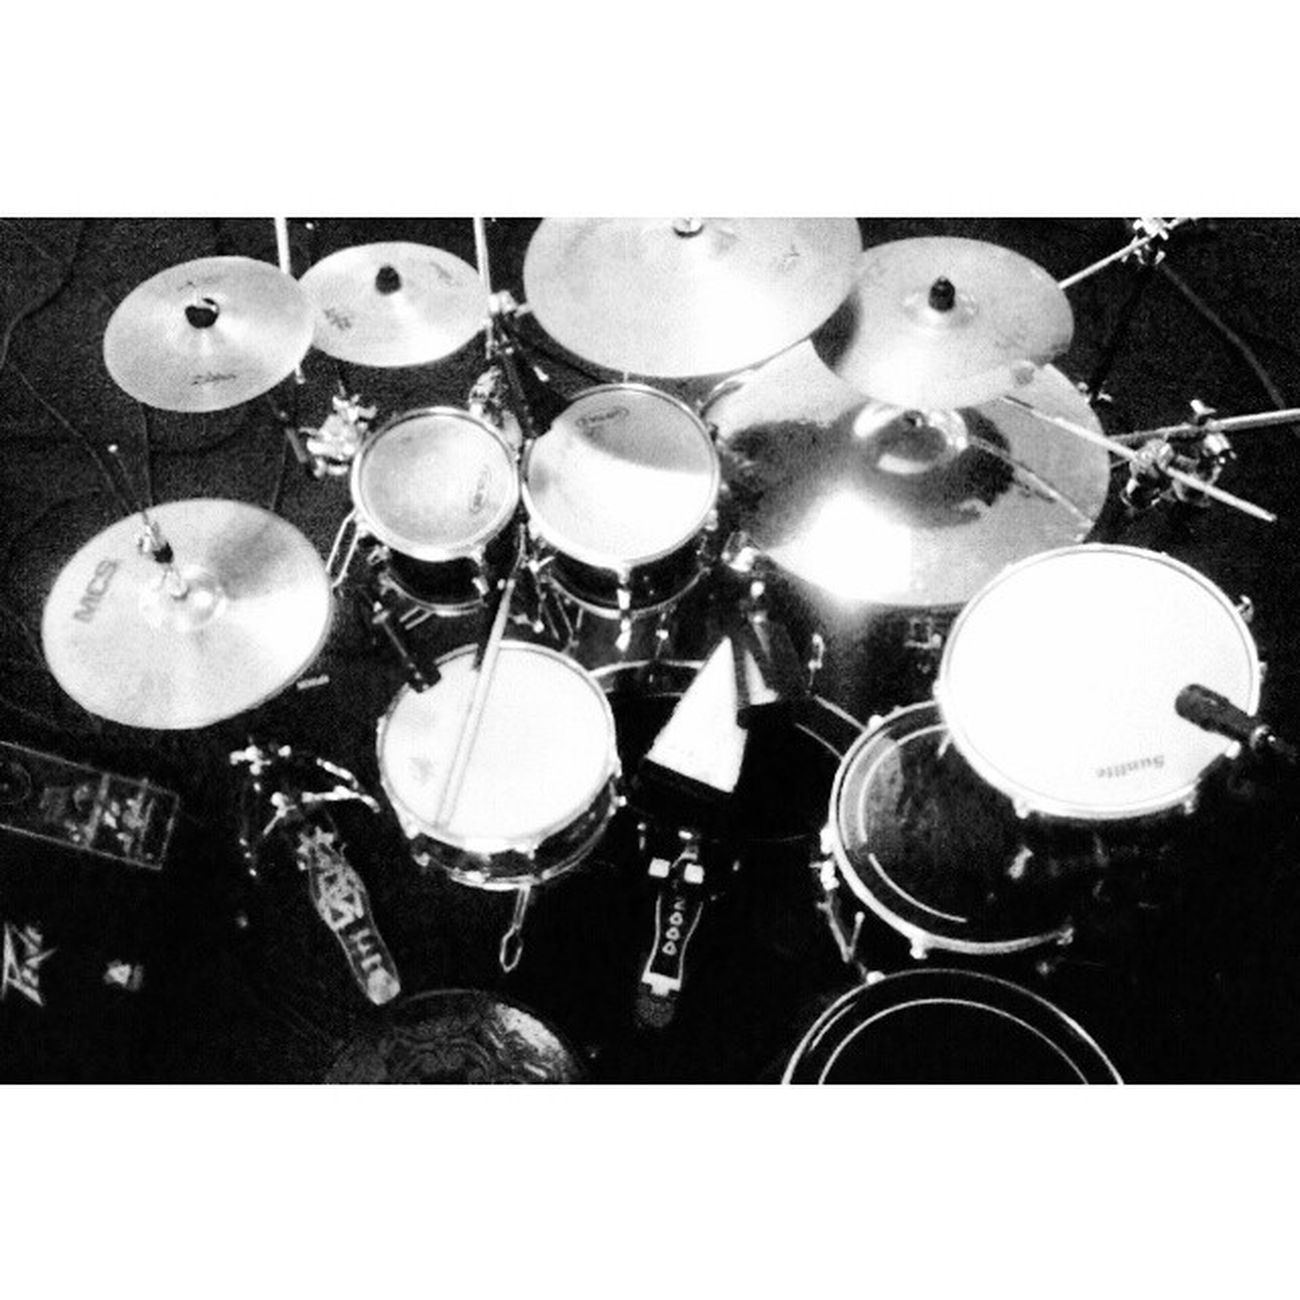 Instasize Tamadrums Zildjian Remo Evans Drums Drummer Vicfirt Promark Mexico Bateria Heavymetal